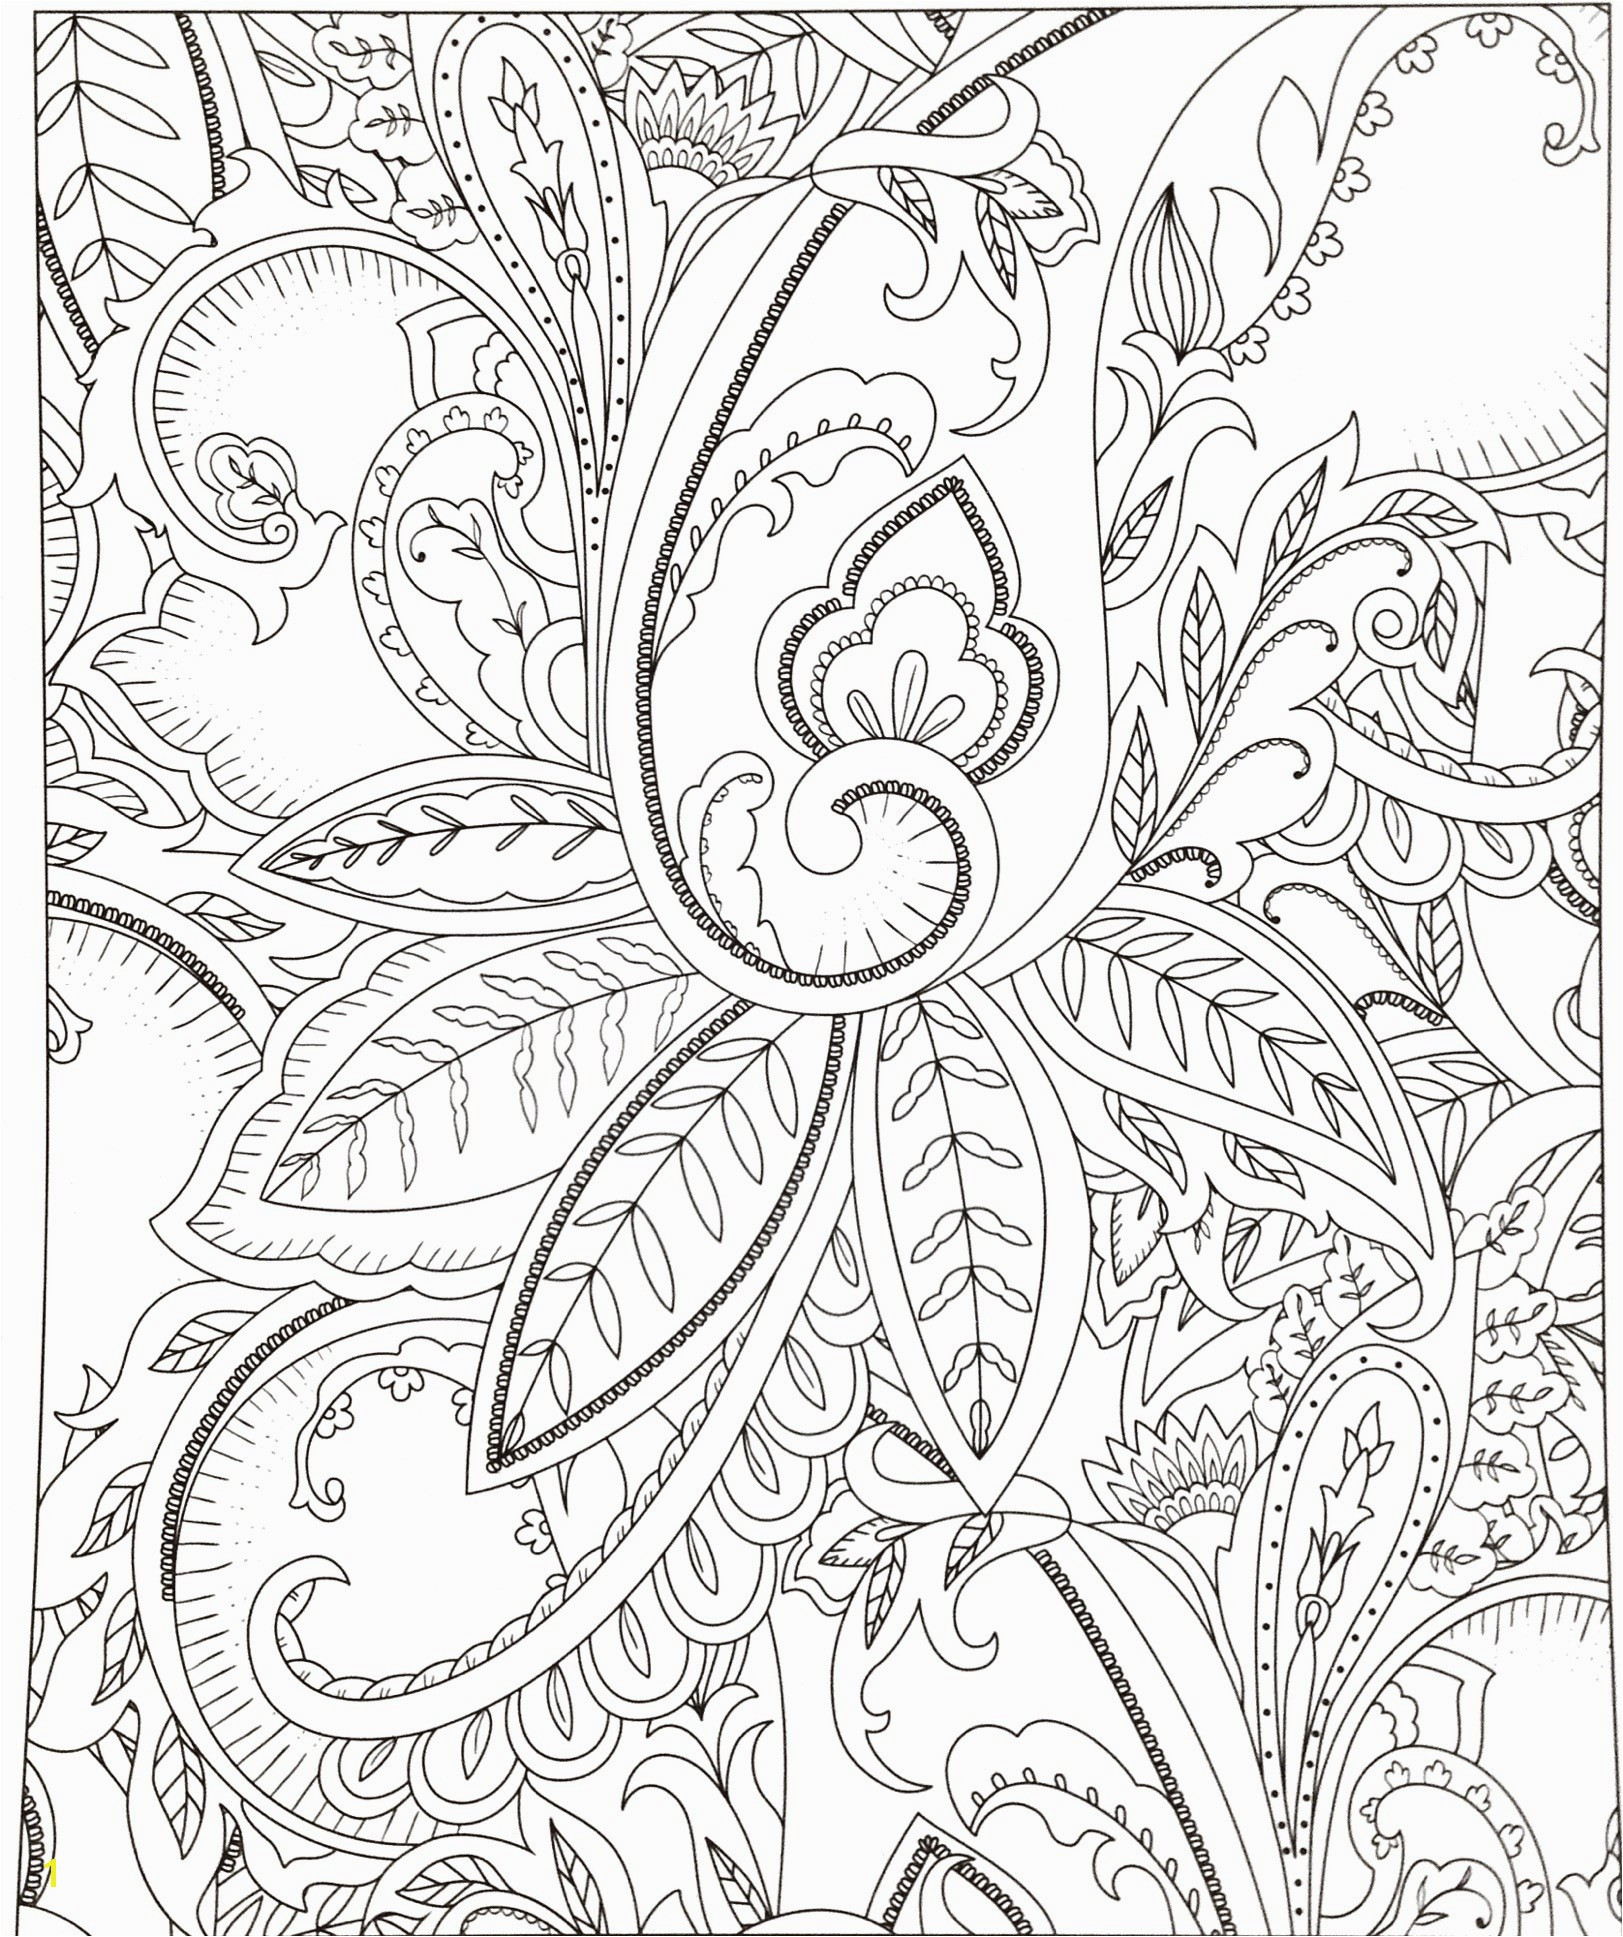 pretty flower vases of pretty coloring pages of flowers zabelyesayan com with cool vases flower vase coloring page pages flowers in a top i 0d